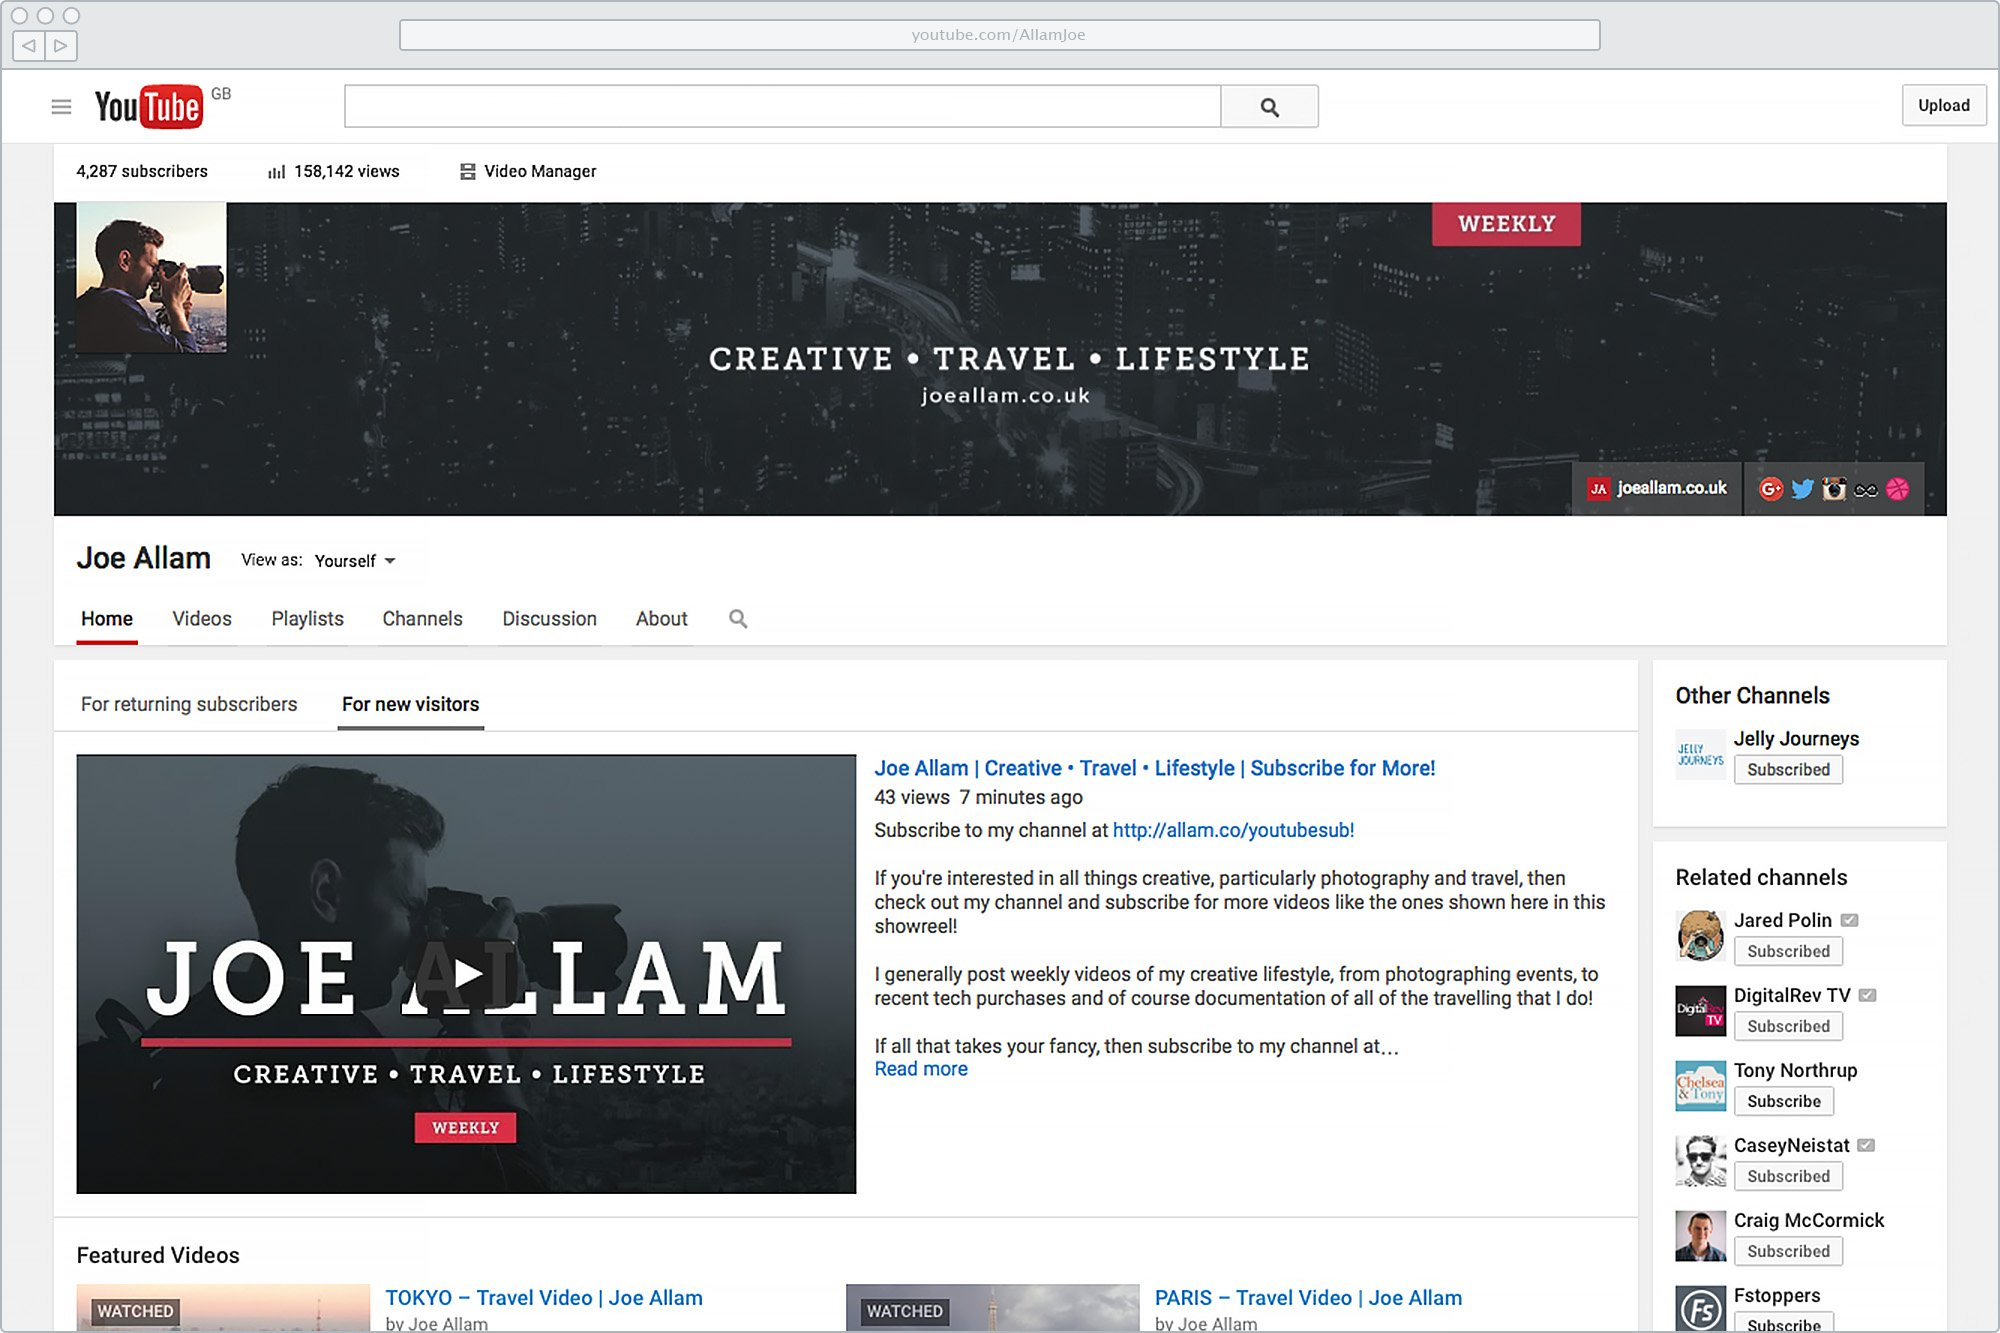 New YouTube Branding with Trailer